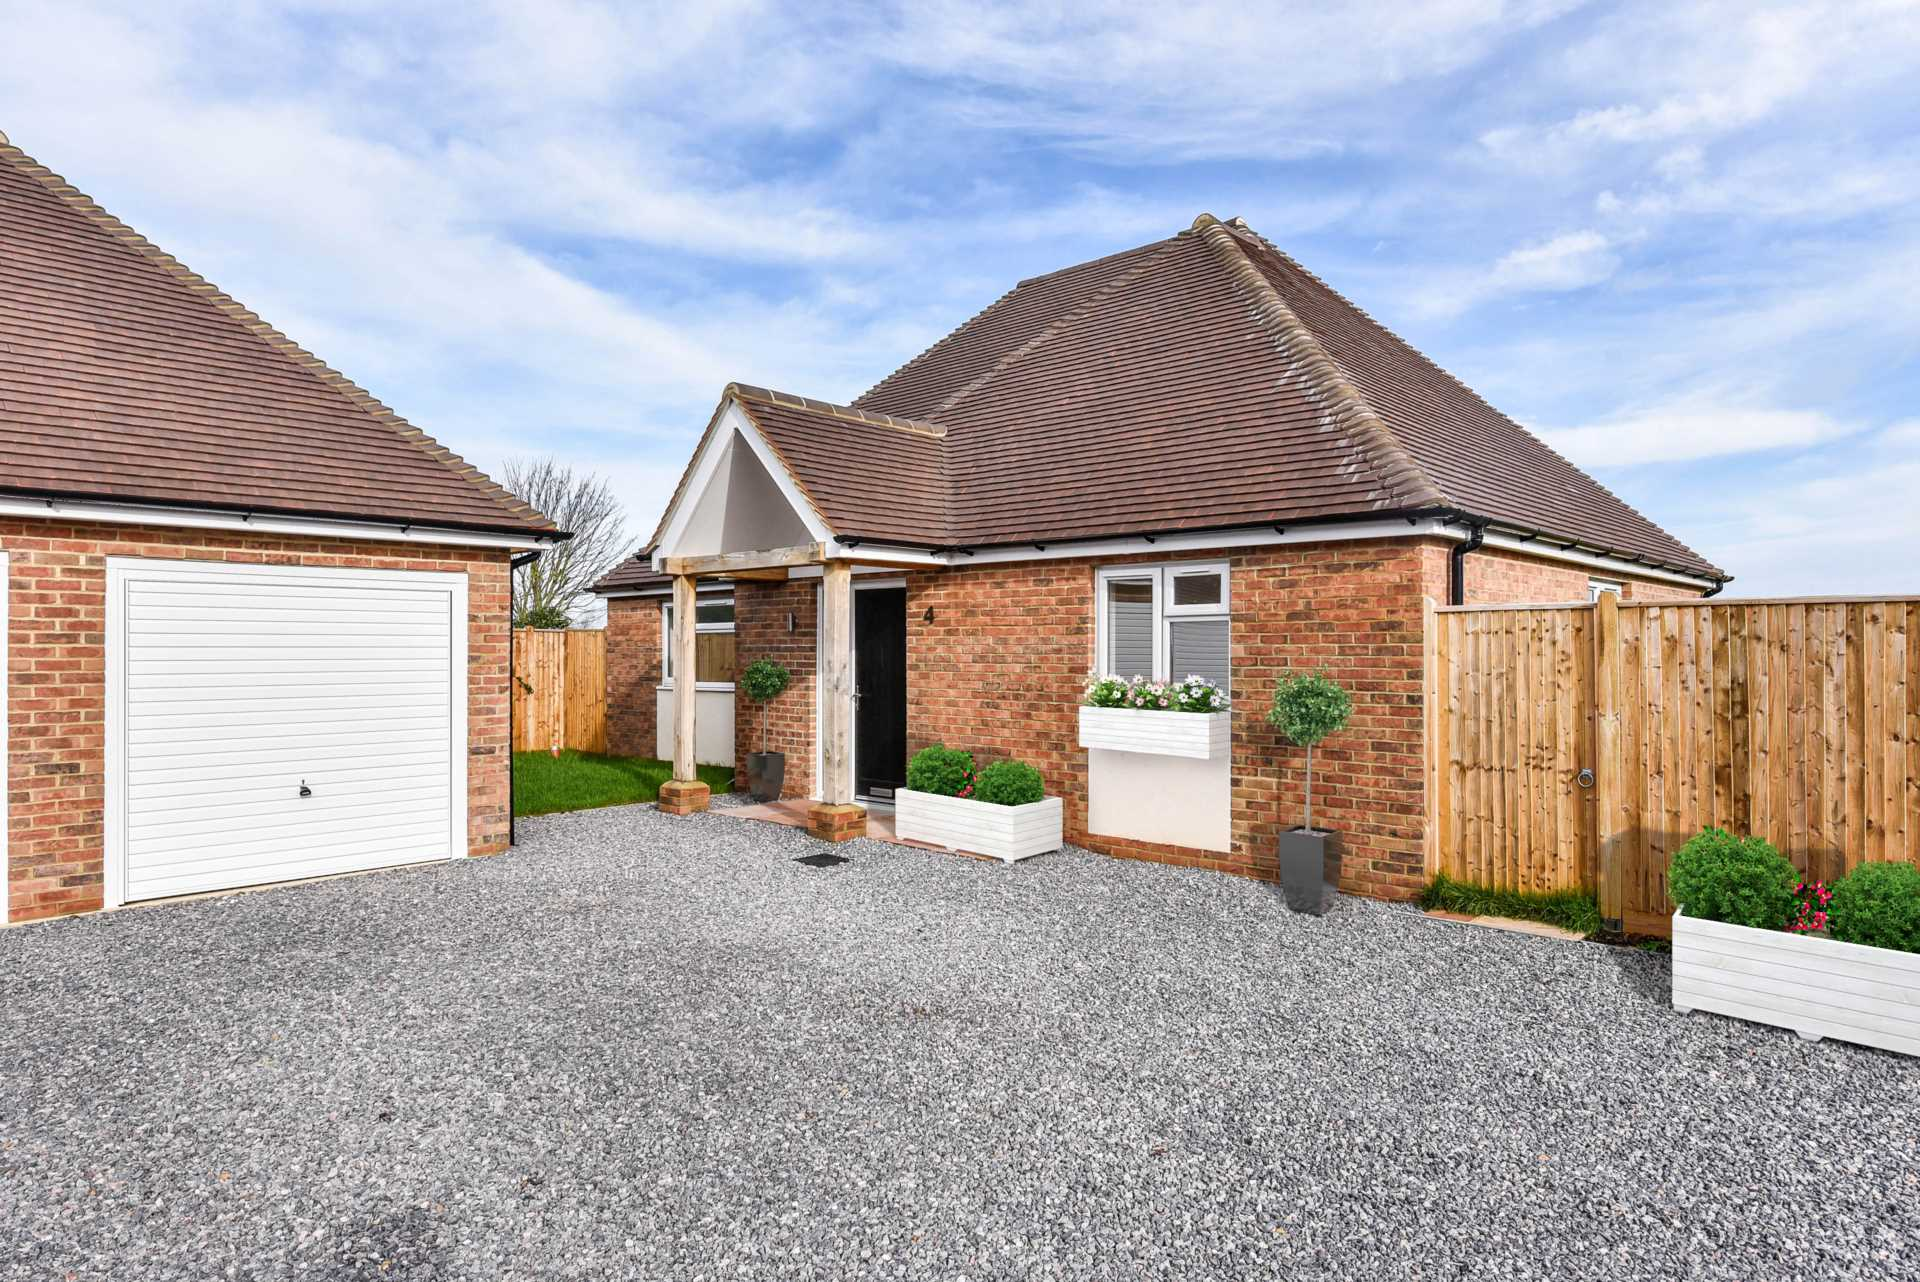 Stocks Lane, East Wittering, West Sussex, Image 1